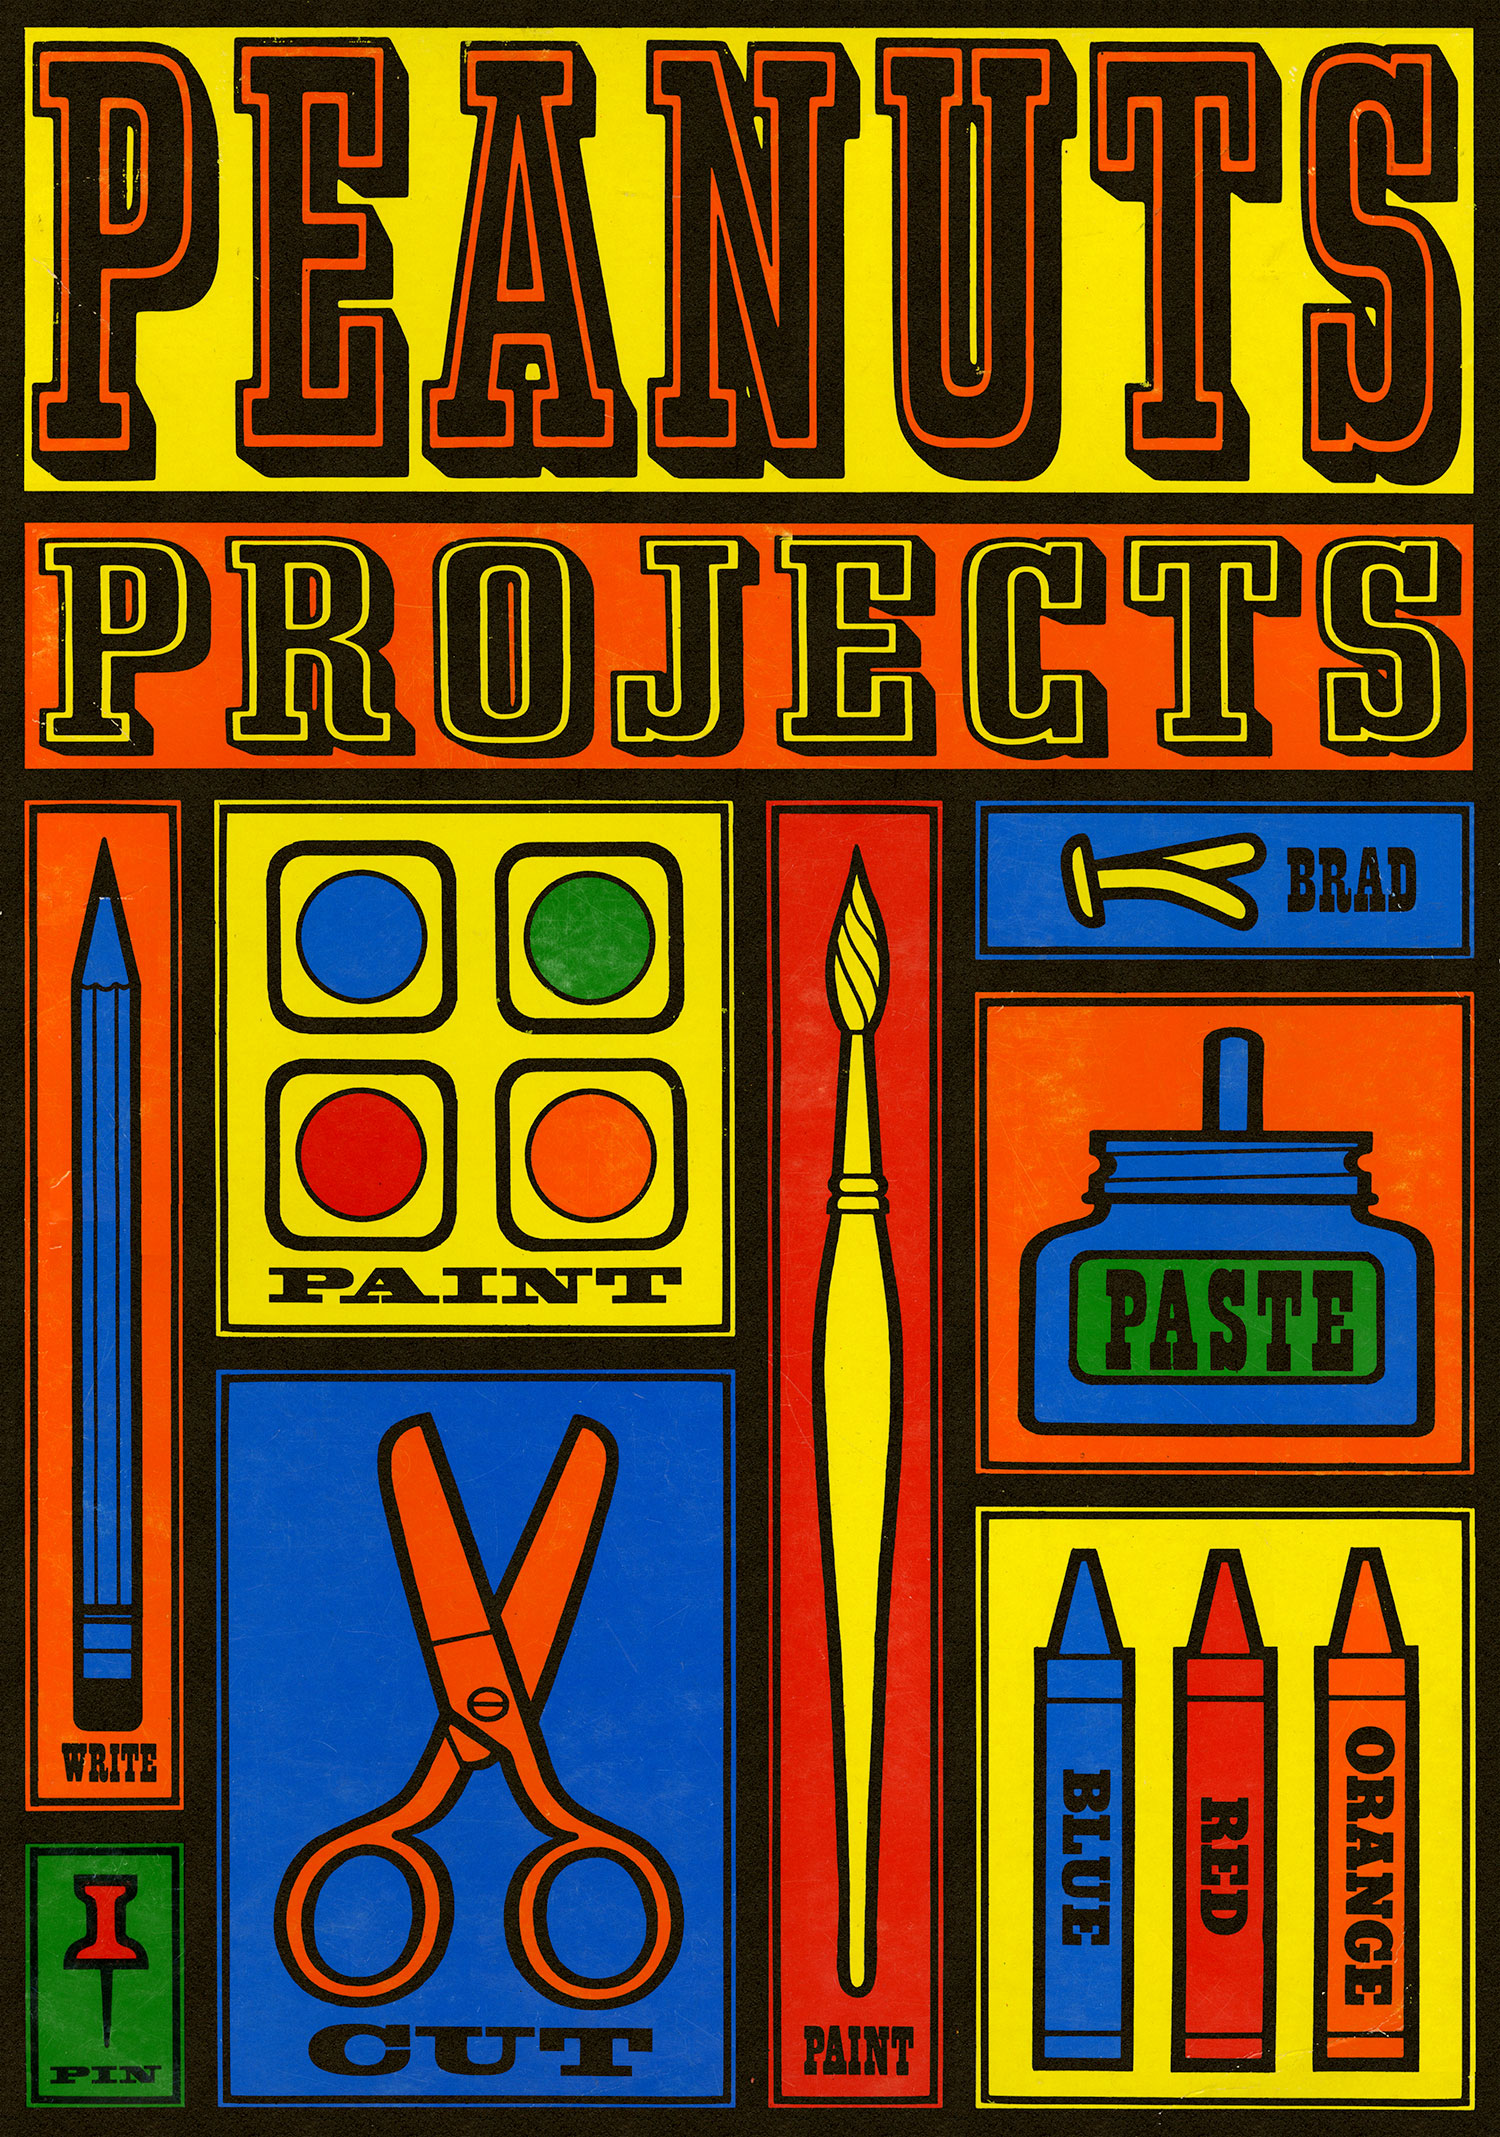 Peanuts_Project_cover.jpg